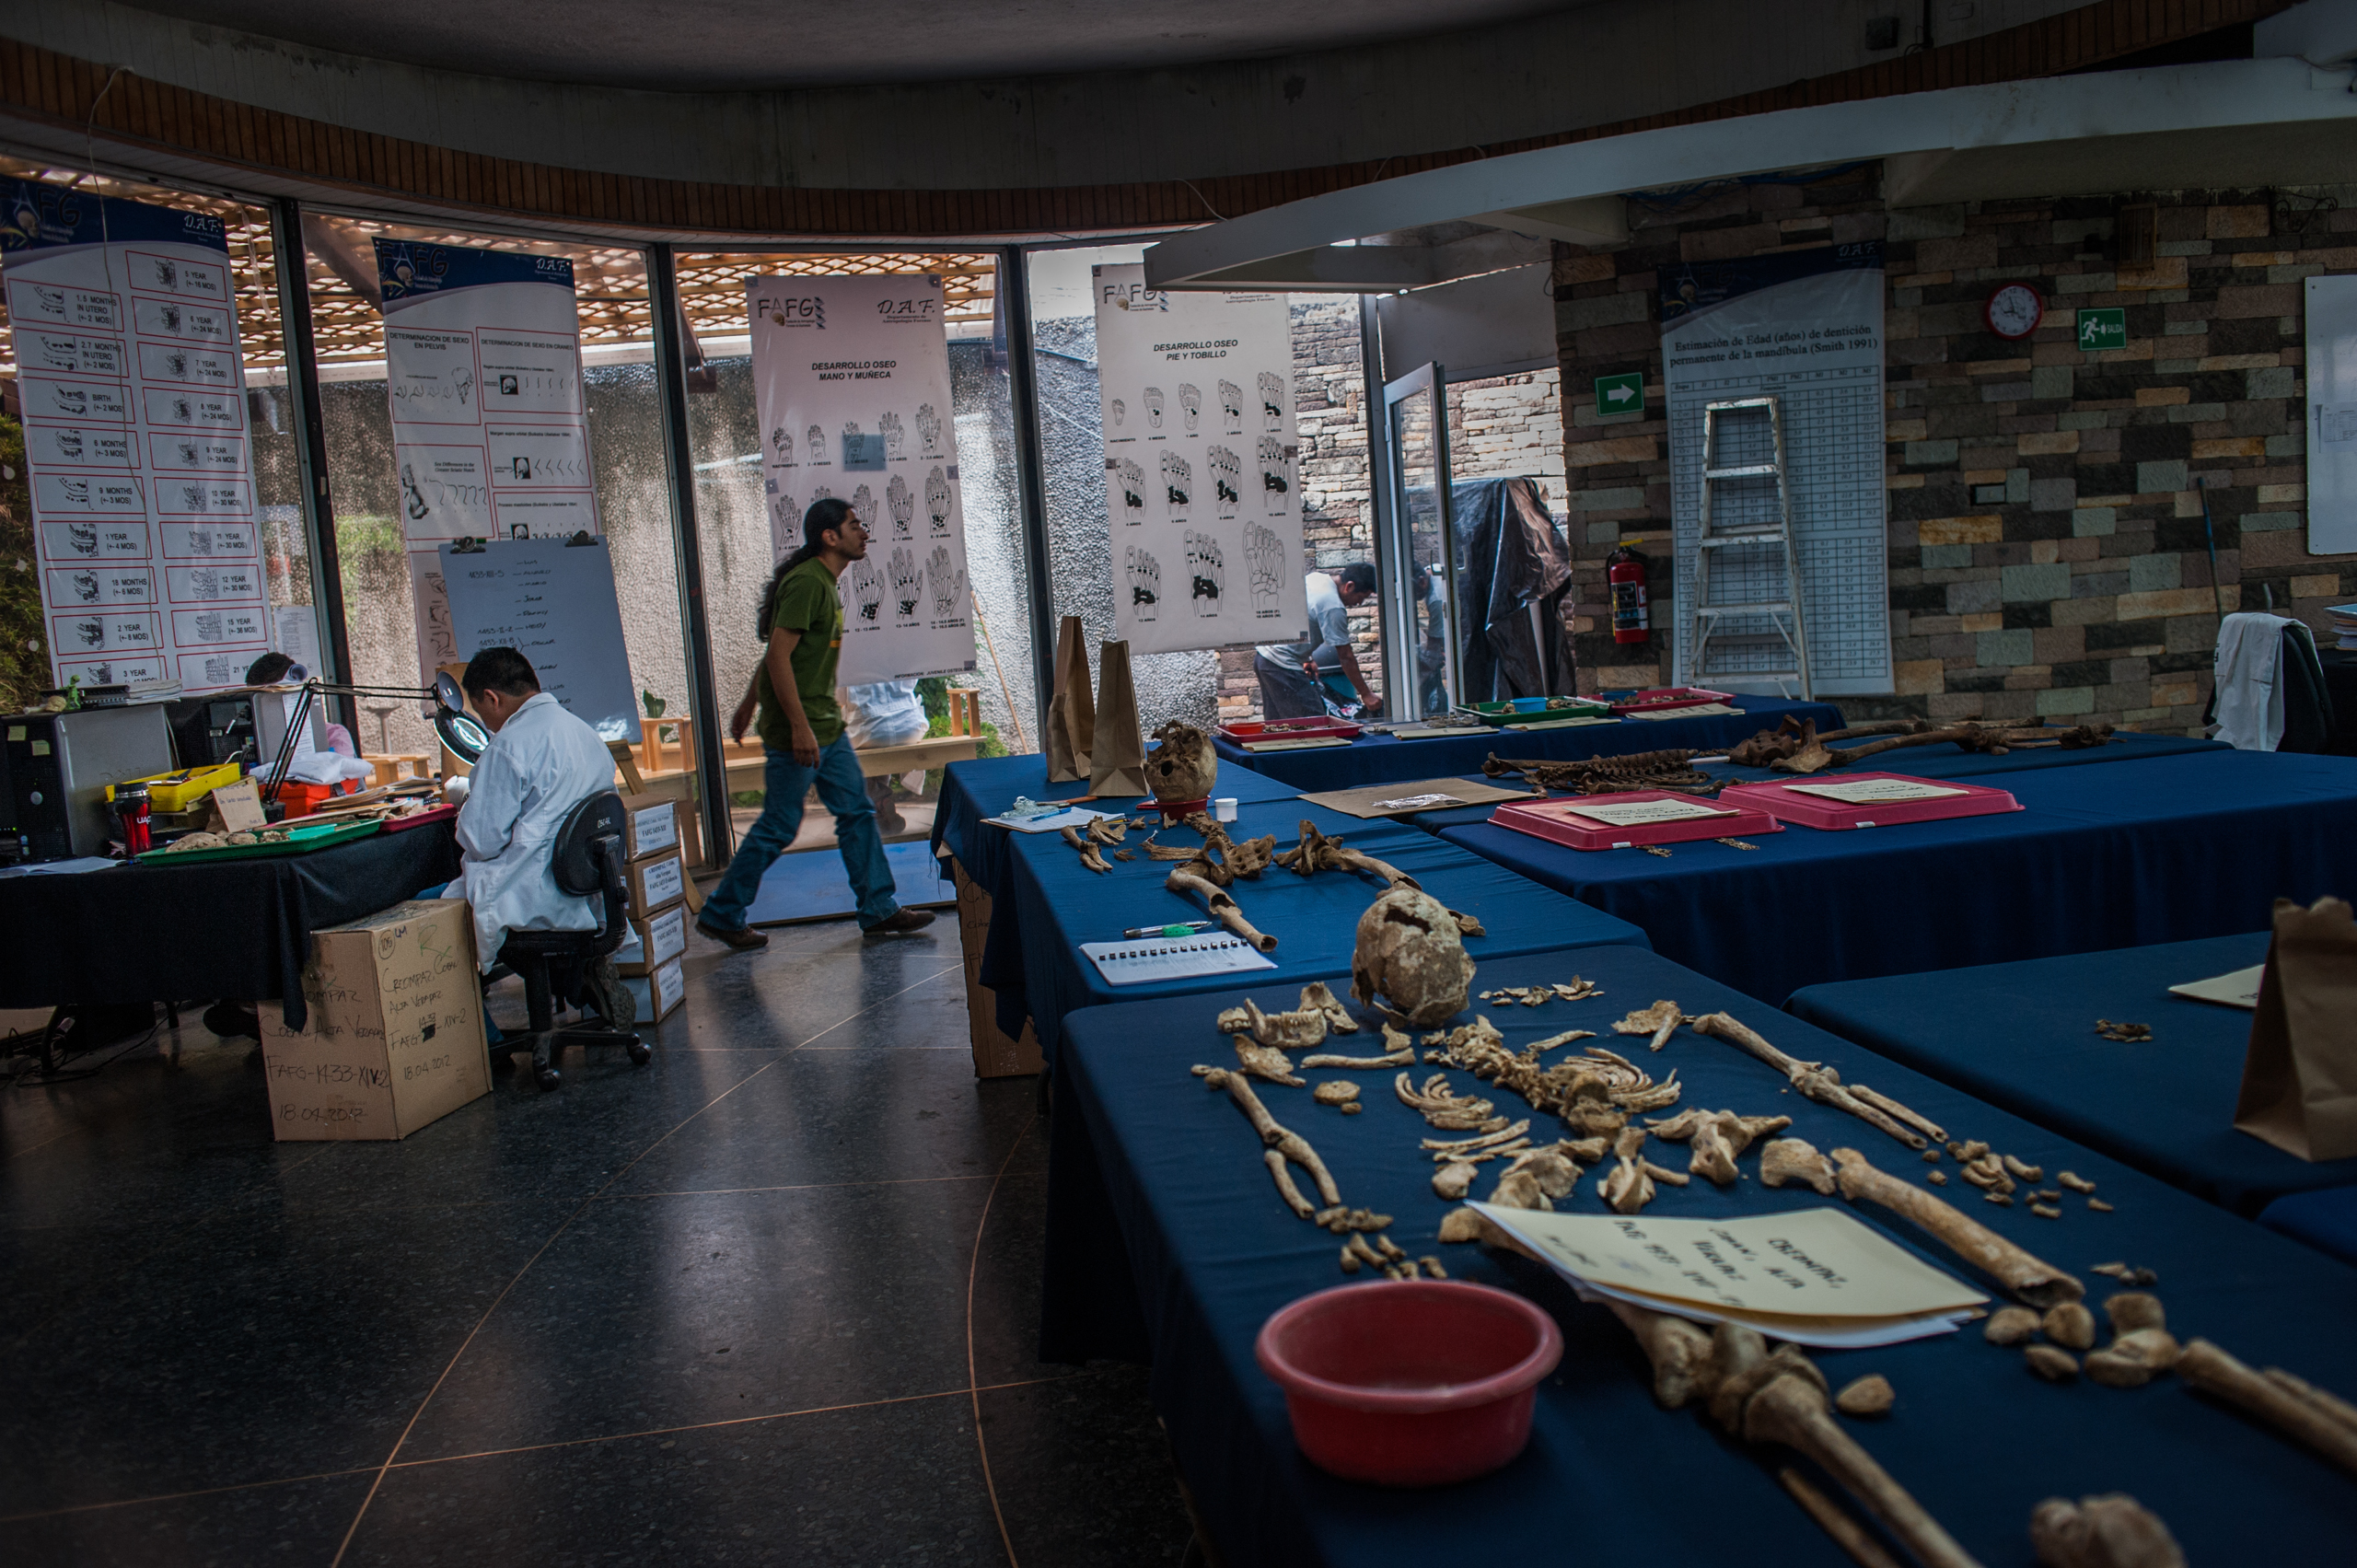 Skeletons are studied in the laboratory of the Fundación de Antropología Forense de Guatemala.